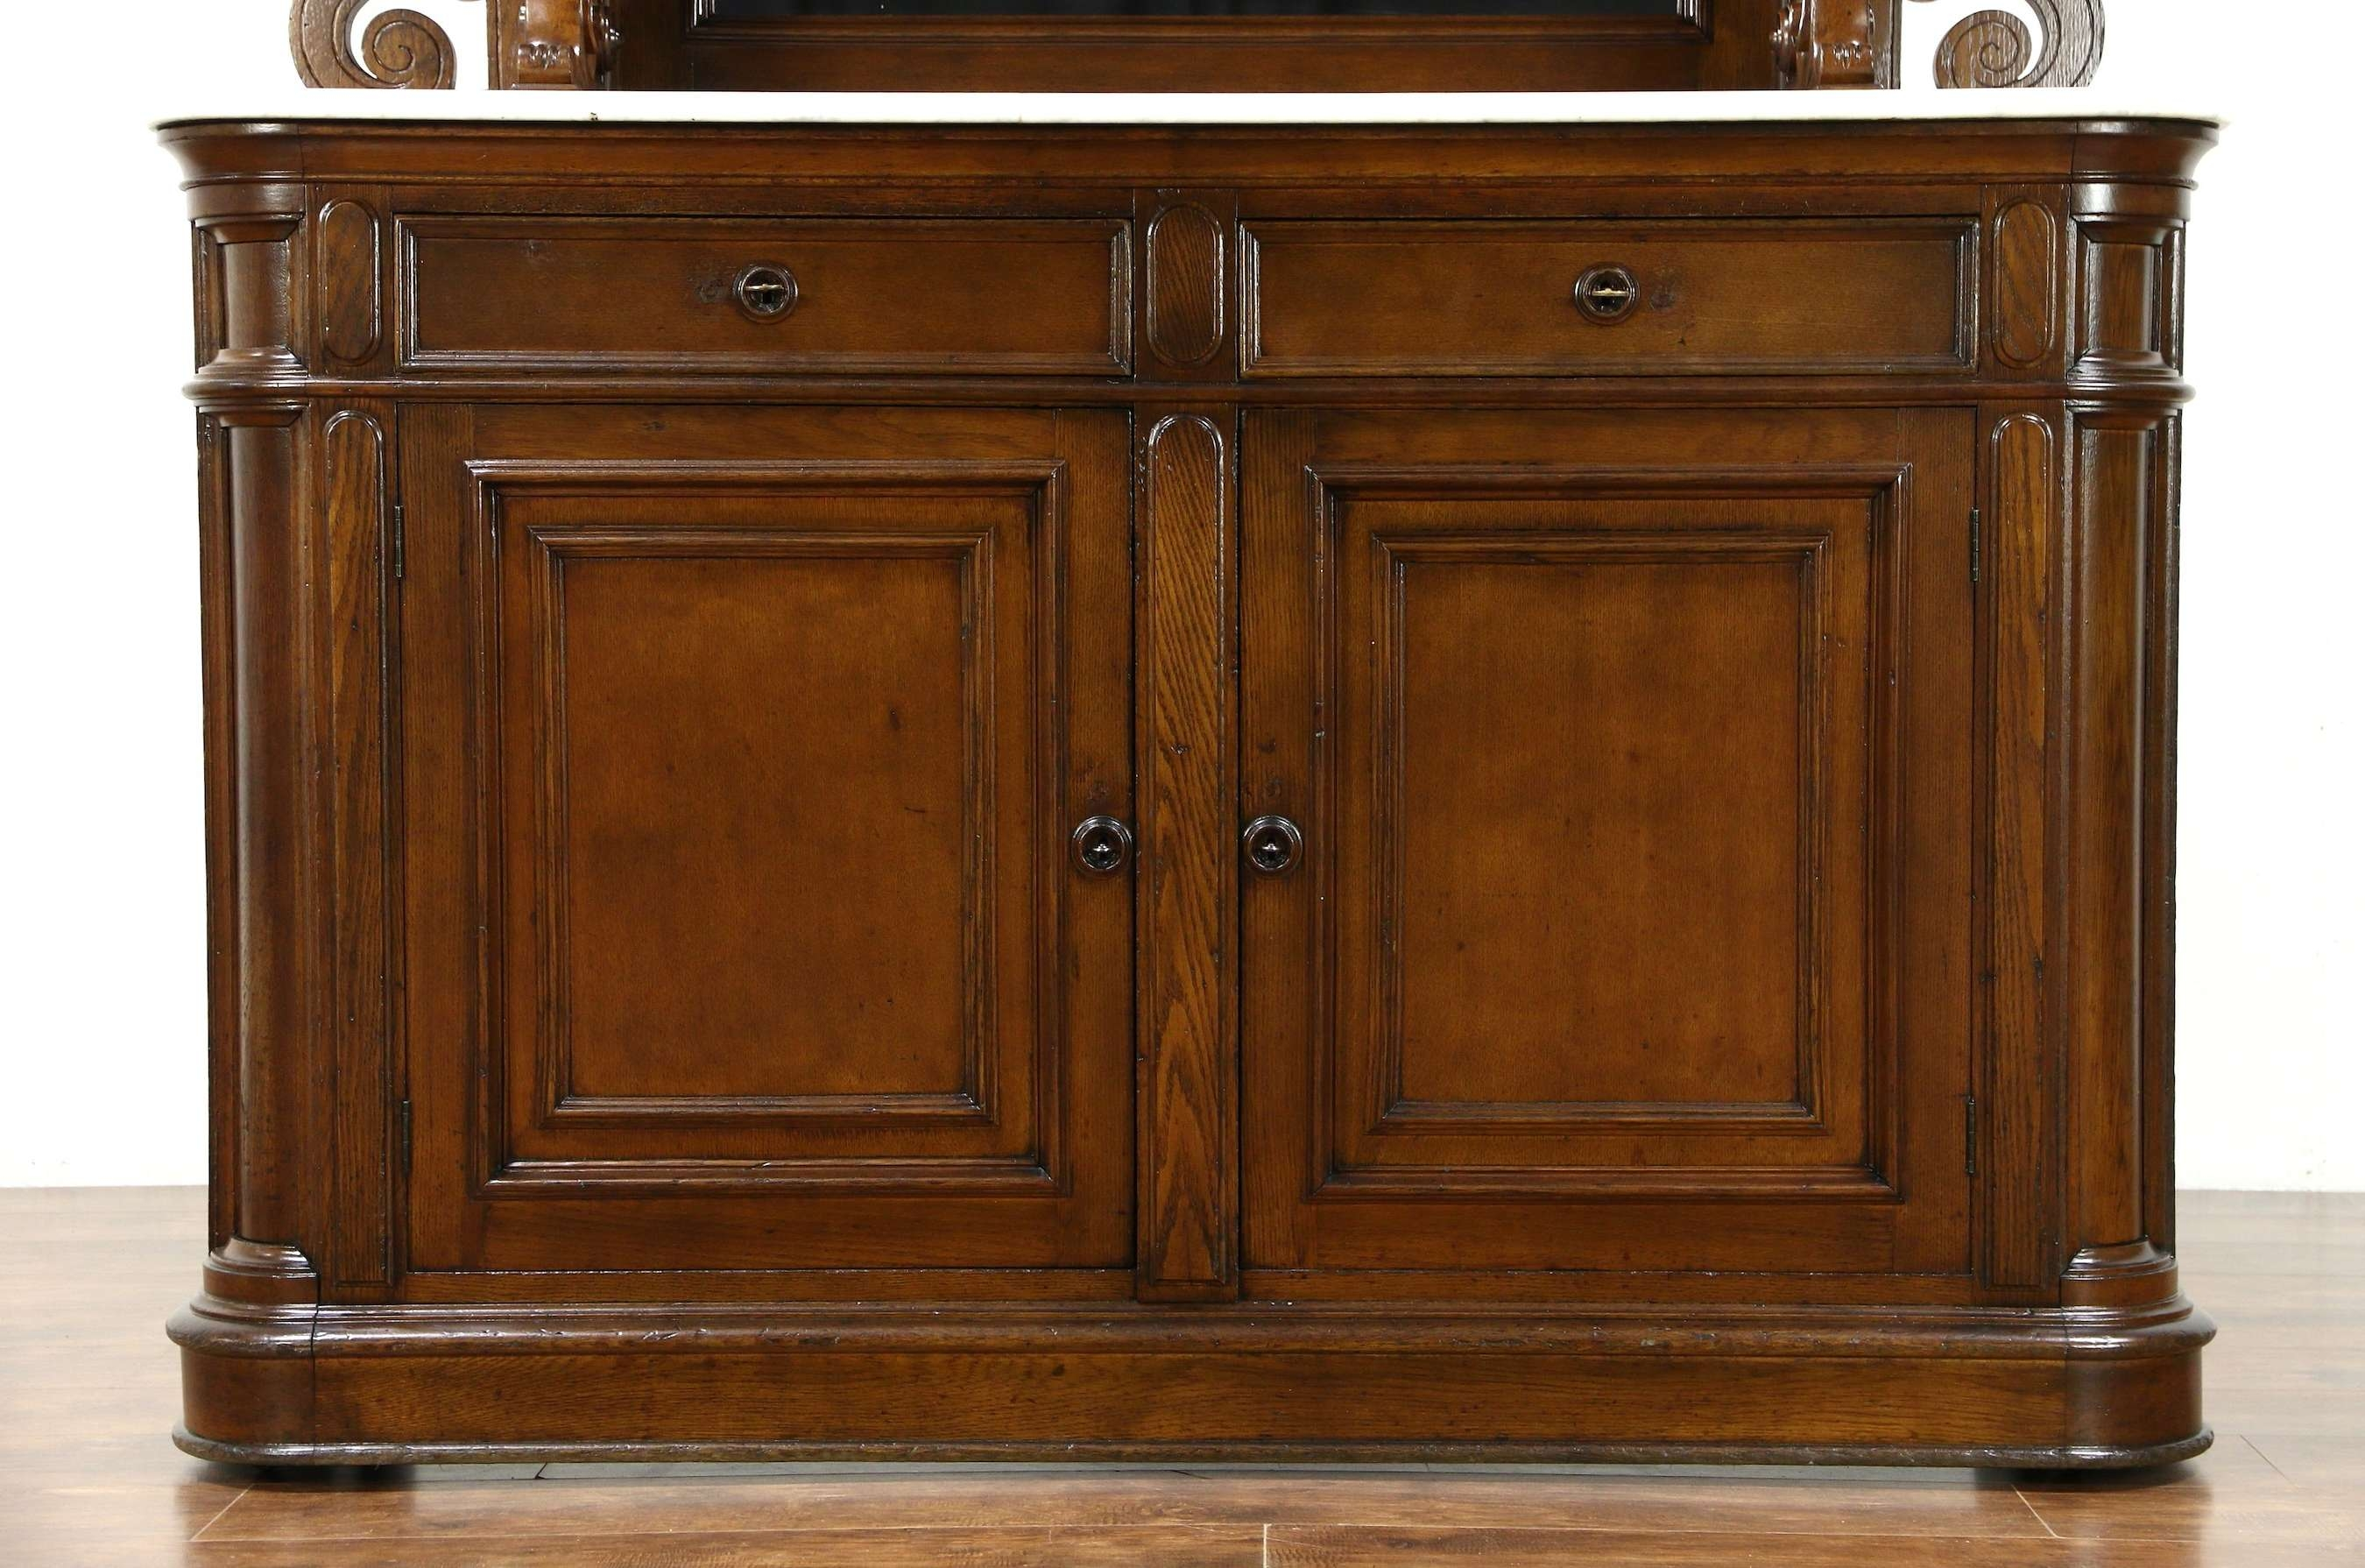 Victorian Grape Carved Oak Antique 1870 Sideboard, Server Or Within Marble Top Sideboards (Gallery 2 of 20)